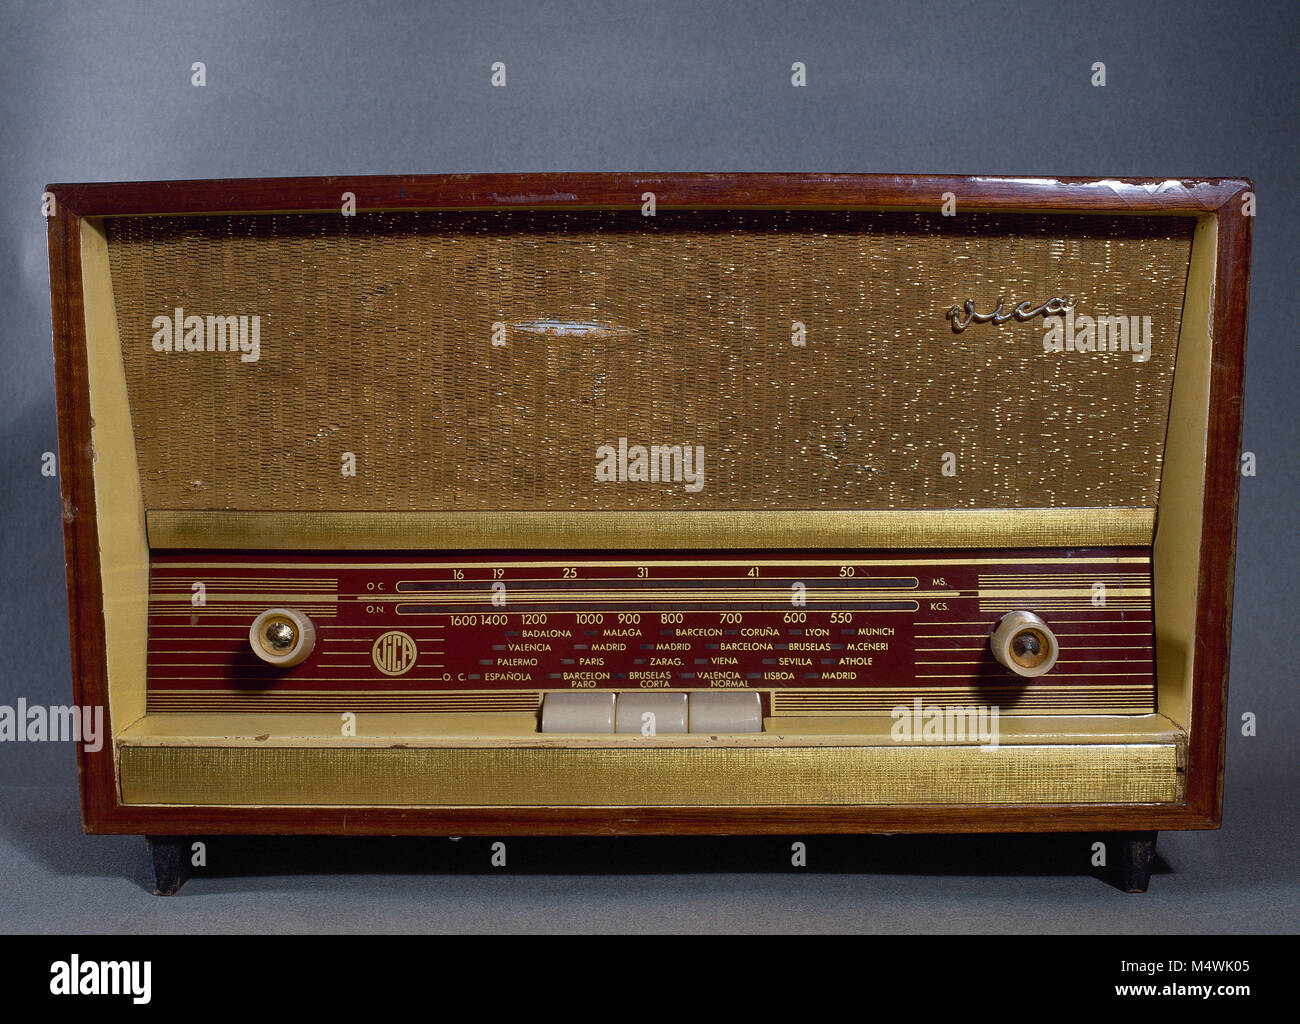 Old radio receiver, Vica brand. 1940s-1950s. Made in Barcelona, Catalonia, Spain. - Stock Image